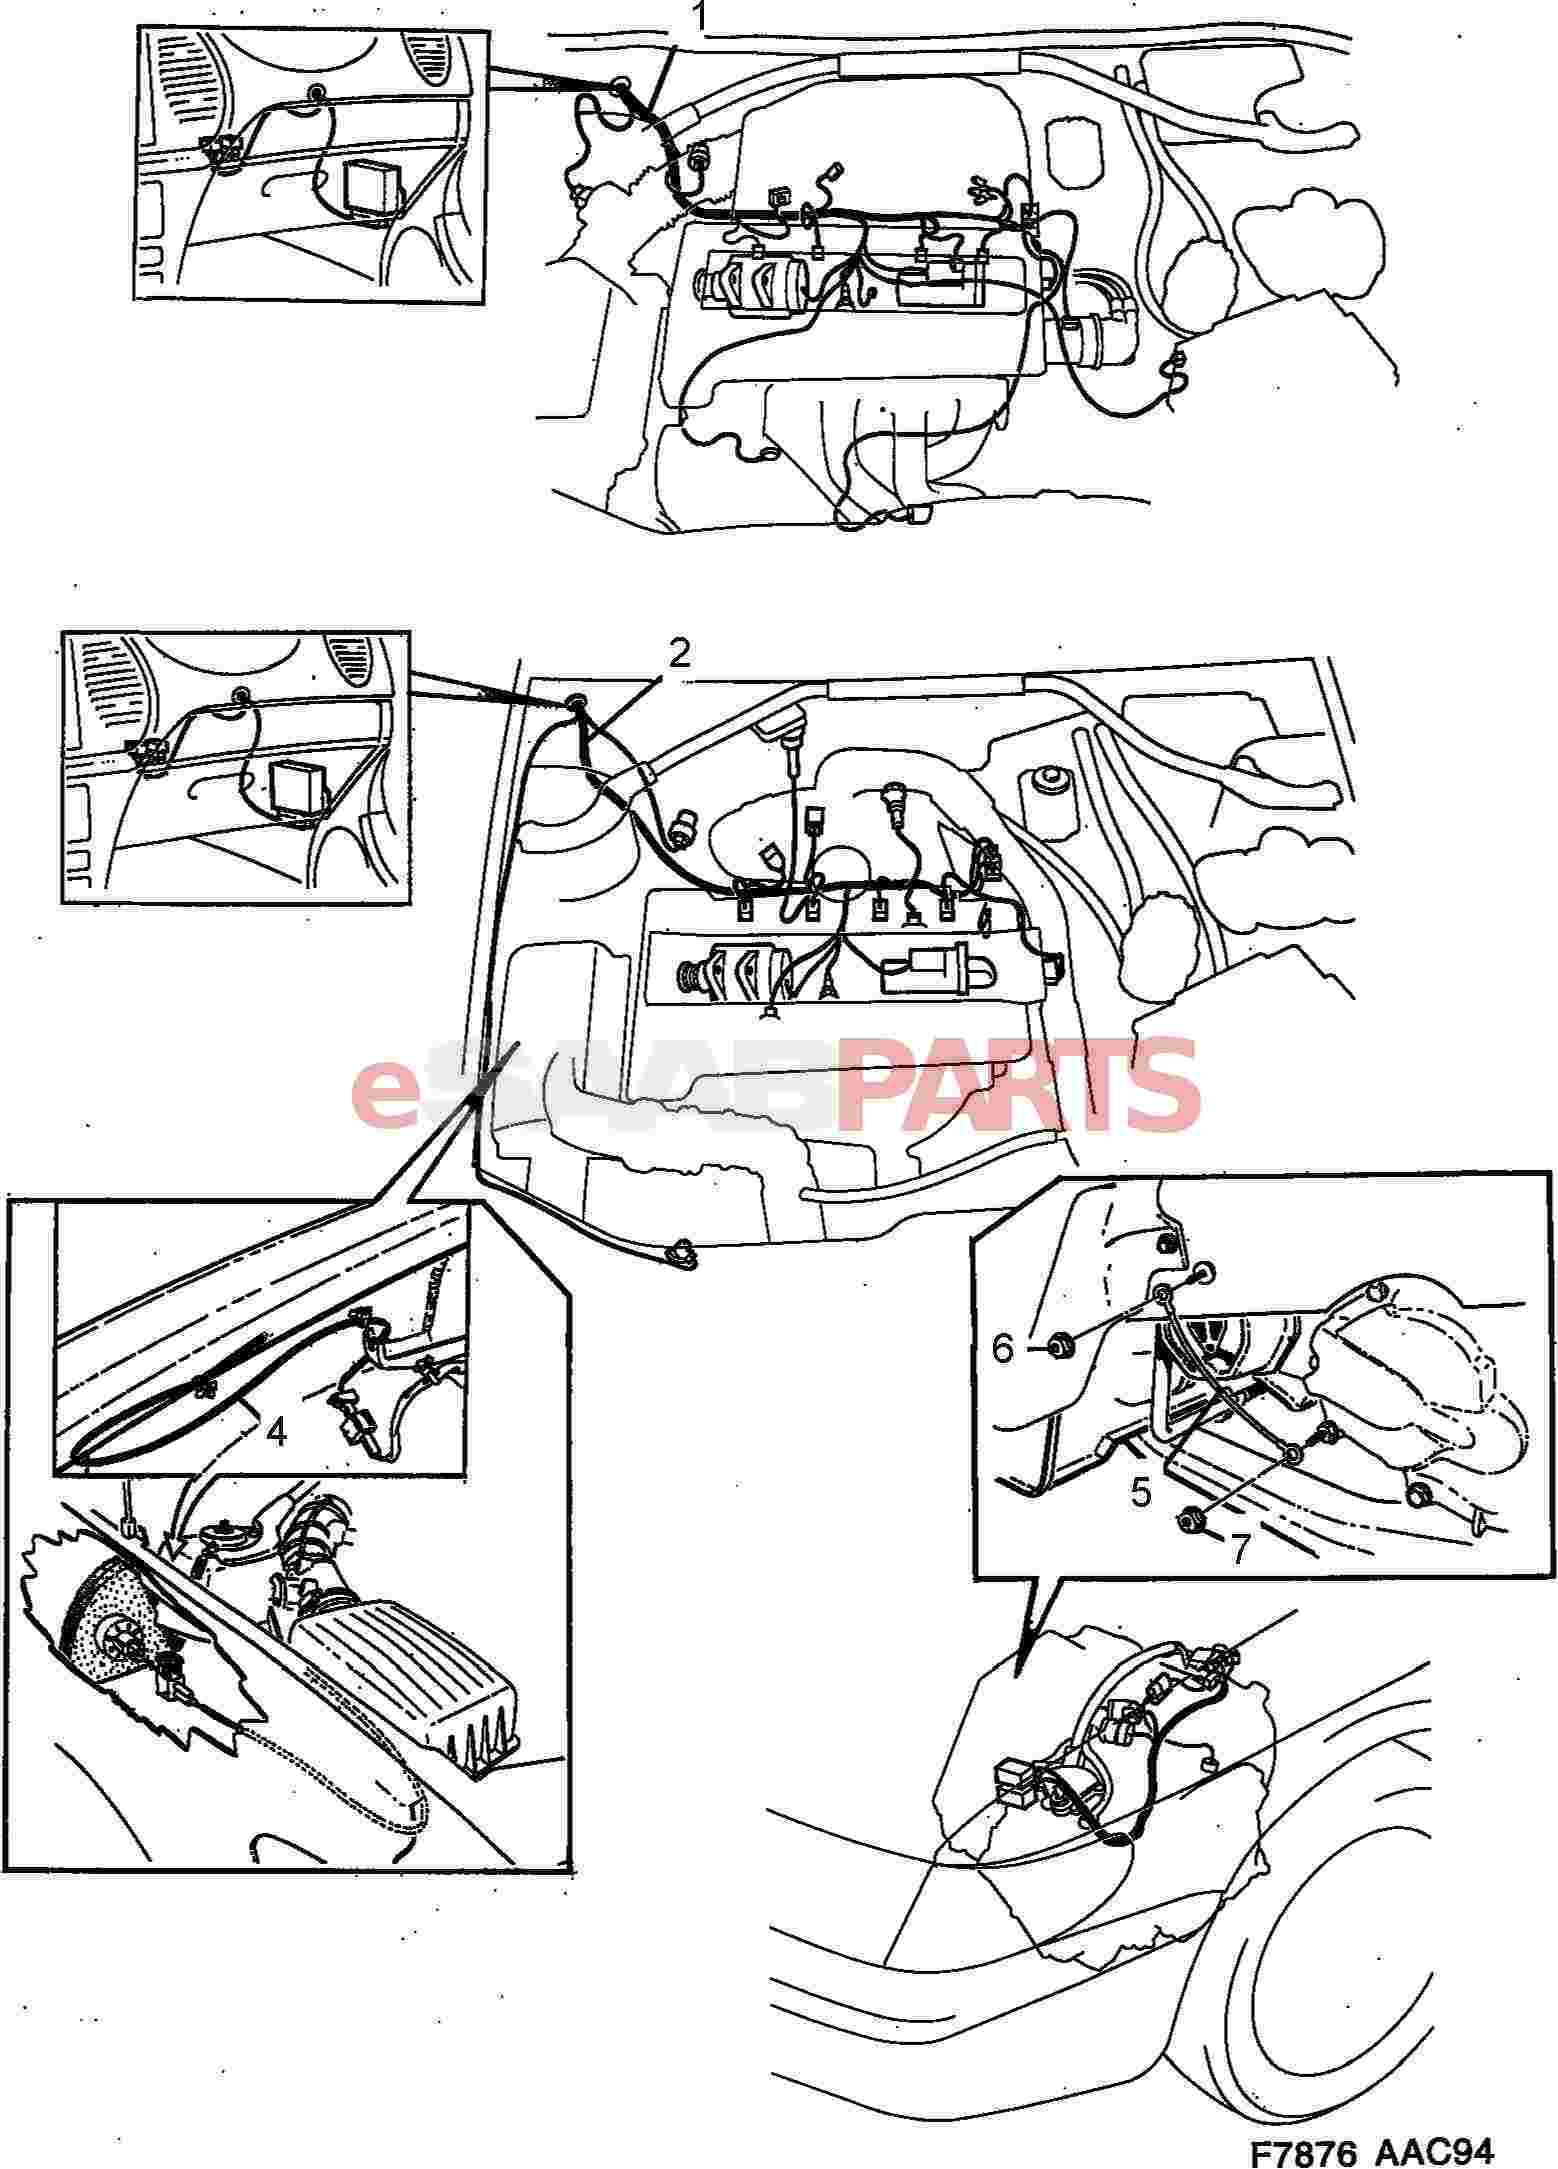 Saab 900 Wiring Harness Electrical Diagram Schematics Diagrams C900 For Esaabparts Com U003e Parts Radio Wire